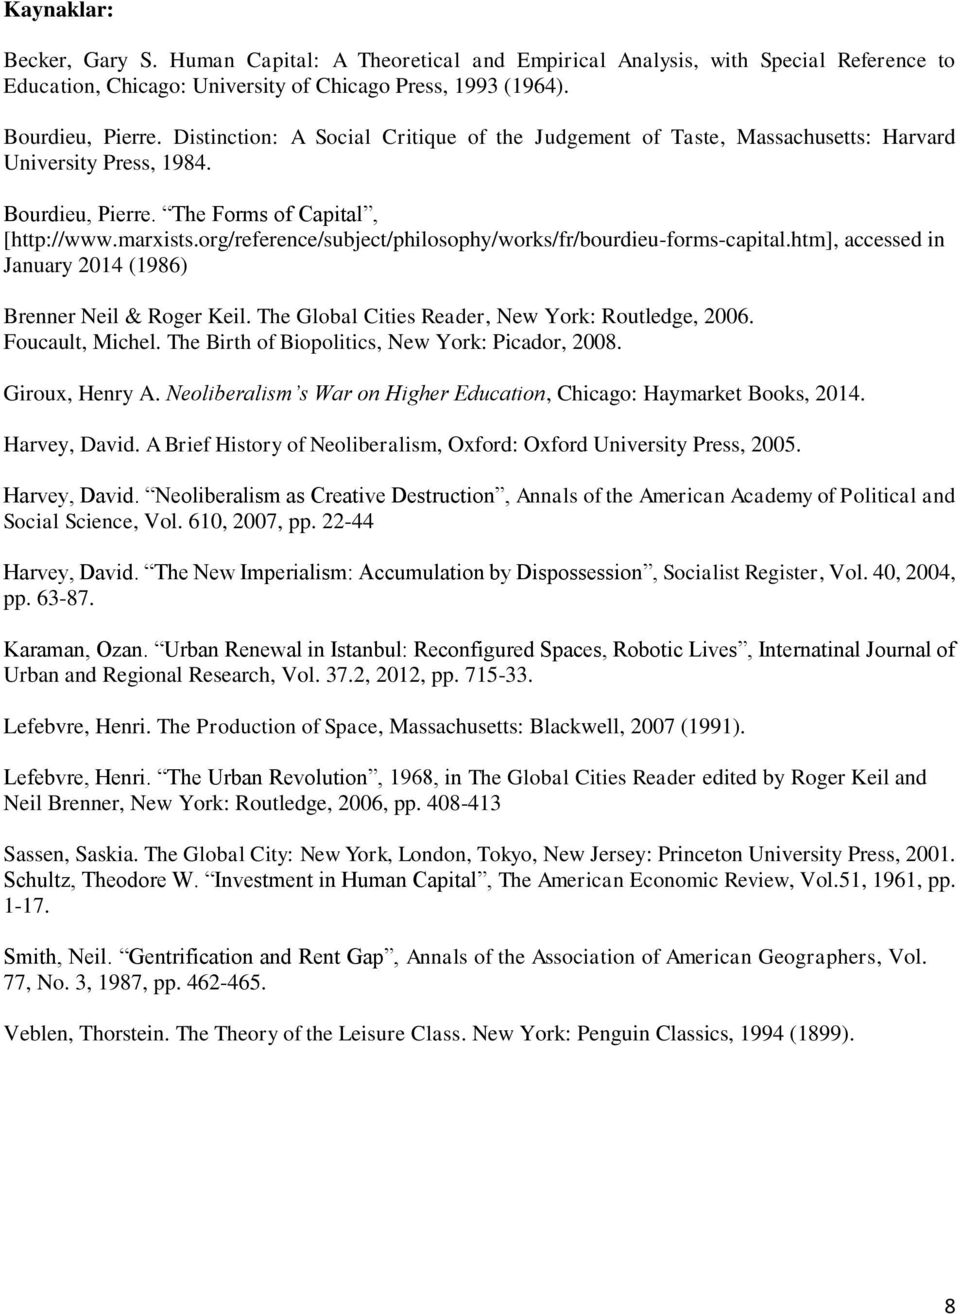 org/reference/subject/philosophy/works/fr/bourdieu-forms-capital.htm], accessed in January 2014 (1986) Brenner Neil & Roger Keil. The Global Cities Reader, New York: Routledge, 2006. Foucault, Michel.